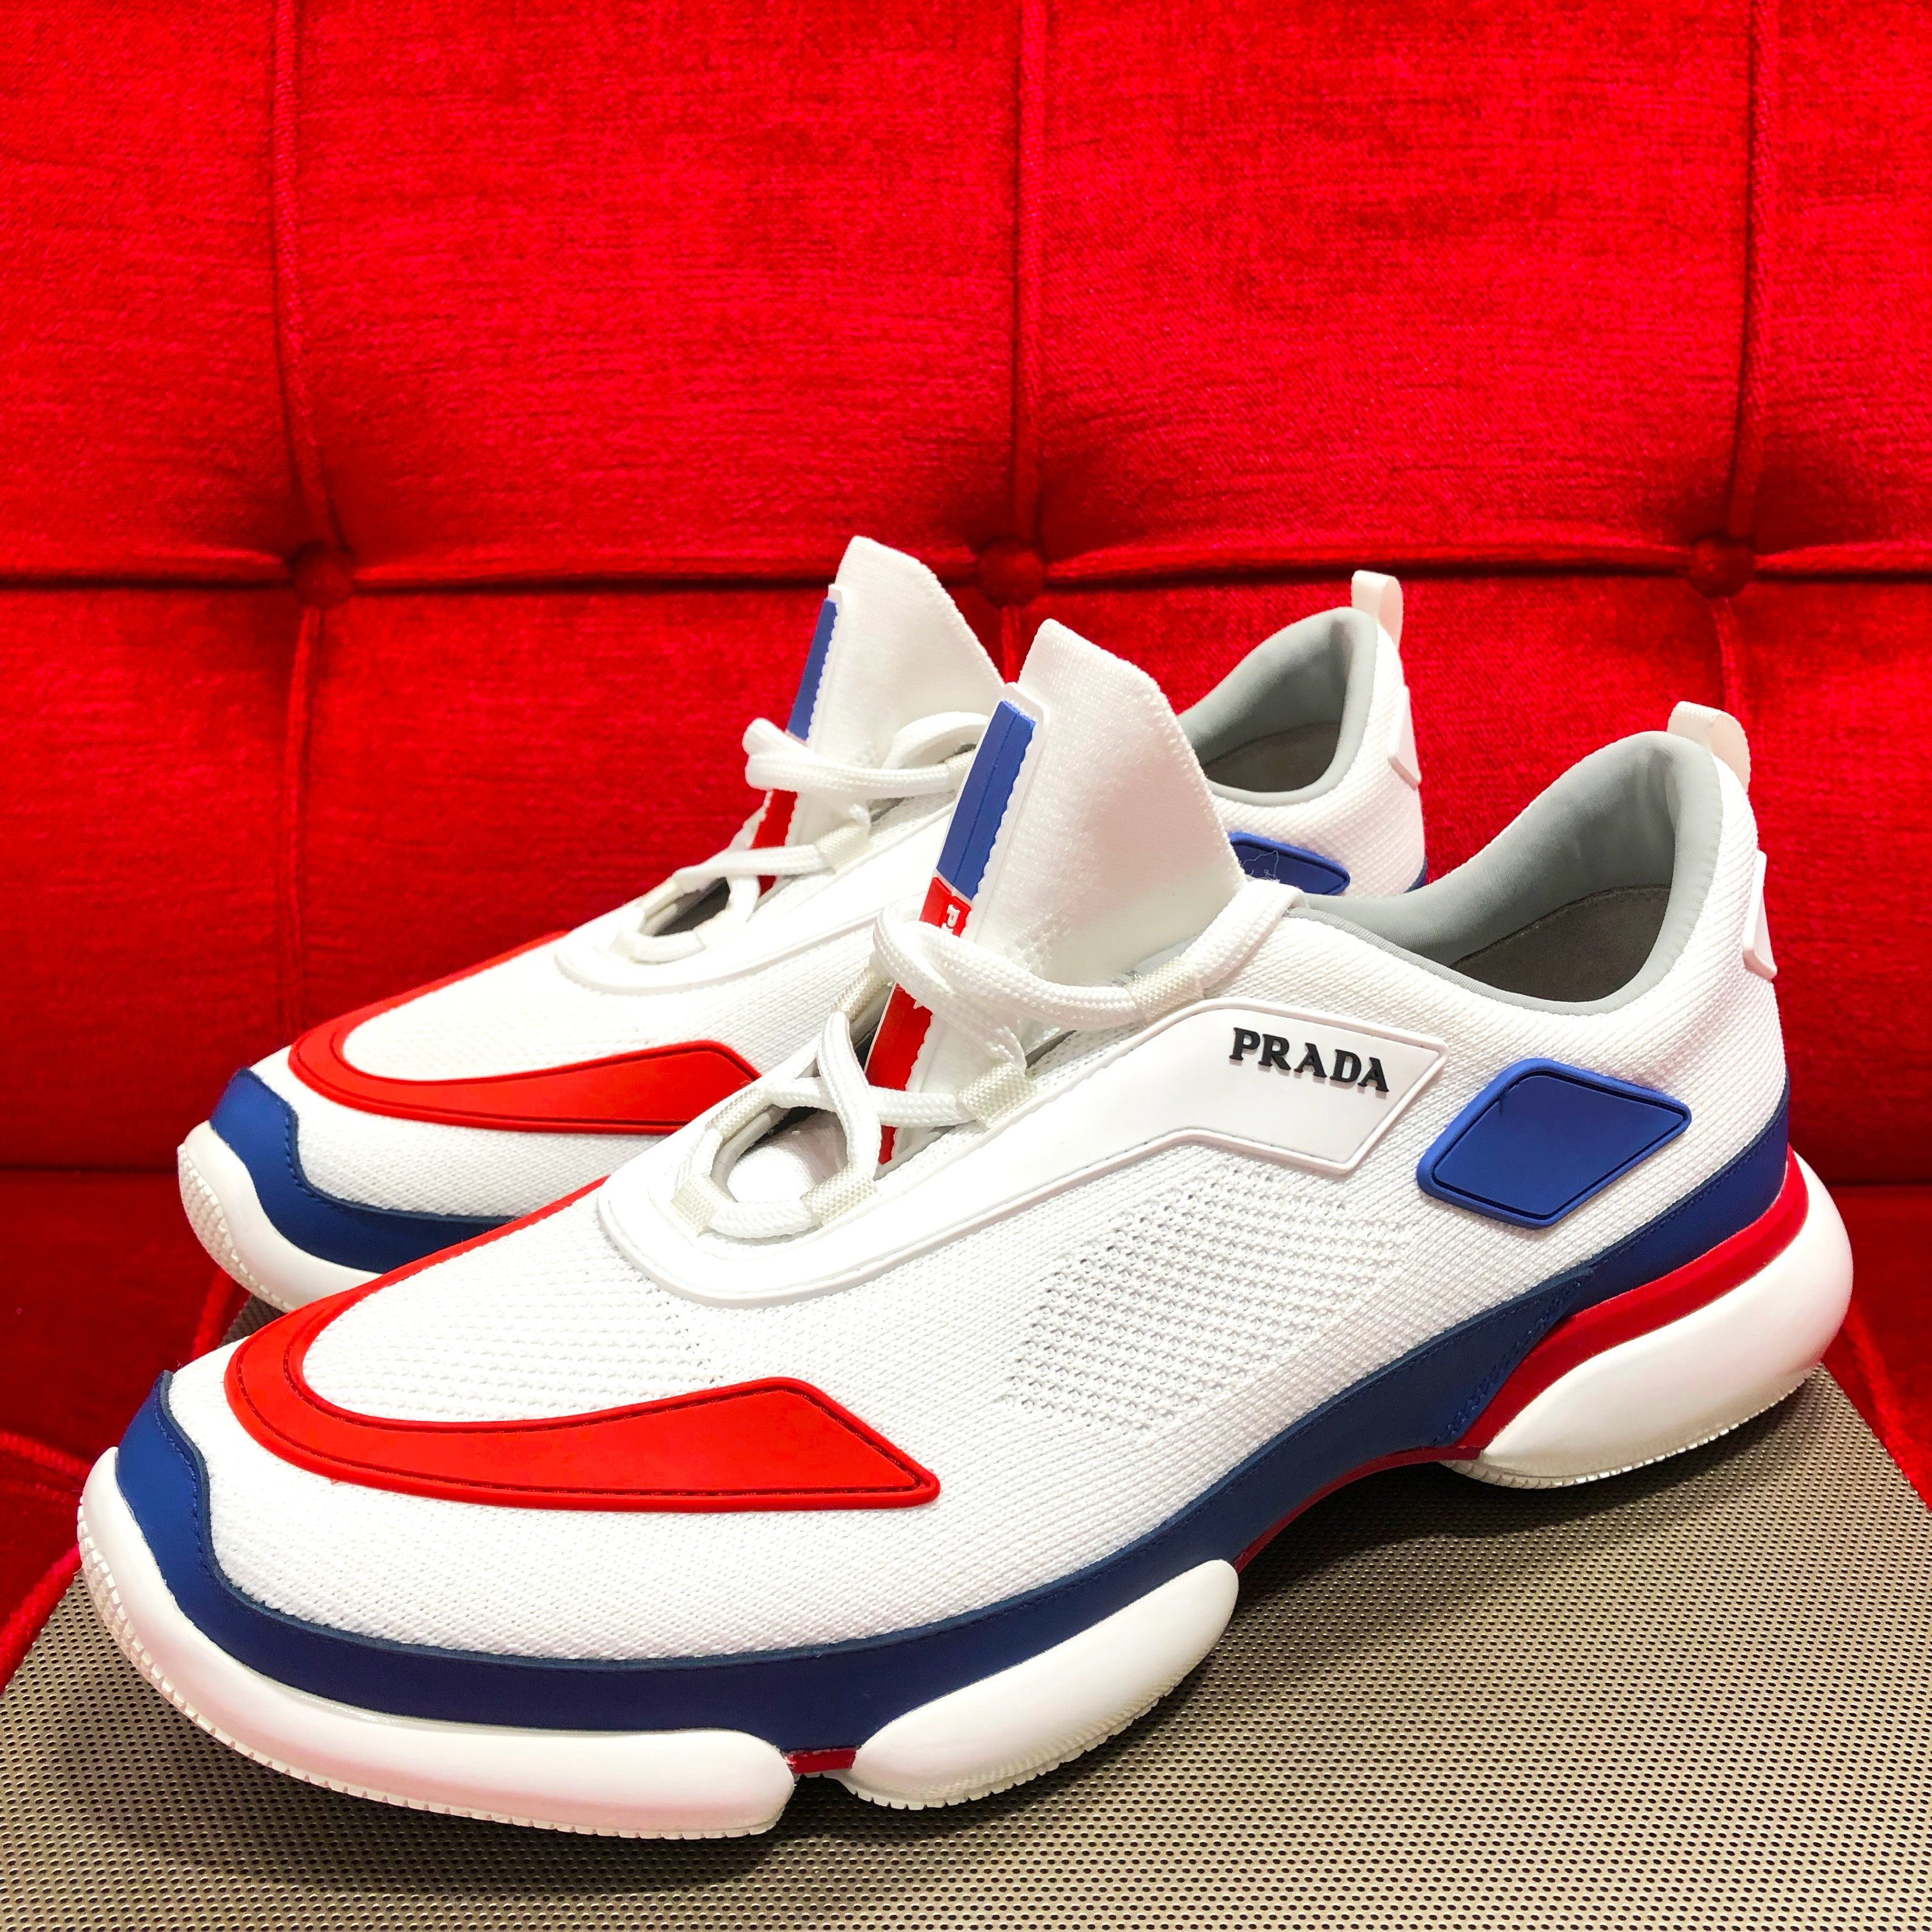 Prada knit fabric Cloudbust sneakers in white and red and blue accents